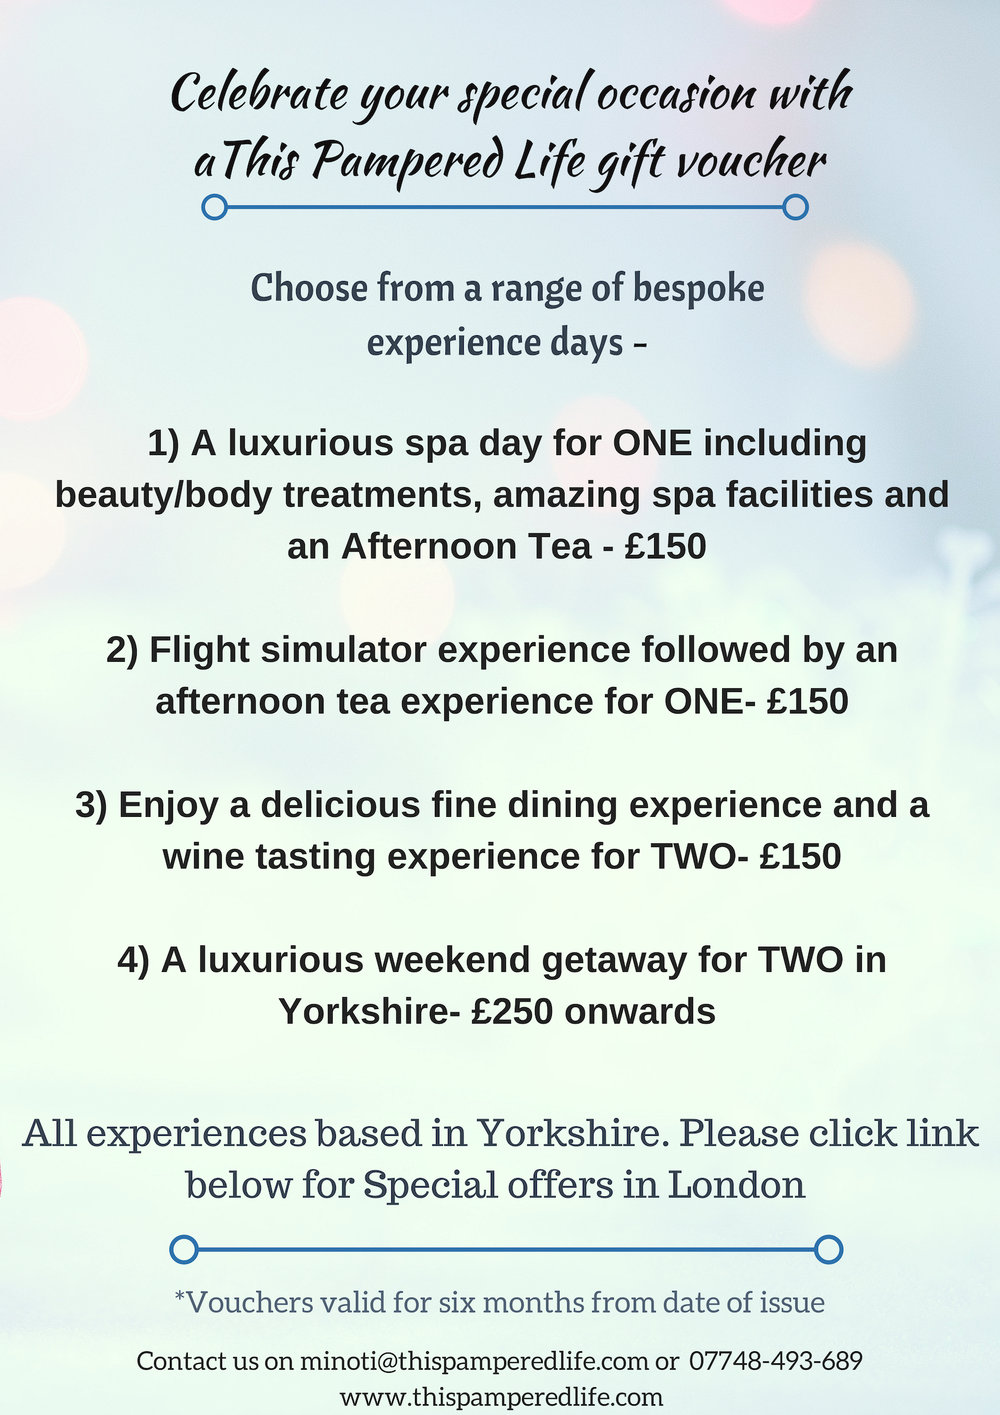 Special Offers- - Our gift vouchers are ideal to gift loved ones for Birthdays, anniversaries, weddings, baby showers or any other day you would like to celebrate!Our gift vouchers are valid for six months.What's more? The recipient chooses the experiences, date and time while we take care of all the planning and delivering.Have a look at our range of experience days on offer and drop us a line for more info :)We all know its experiences that makes any special occasion more memorable.Let's give someone special, the gift of creating memories!Get in touch with us today!